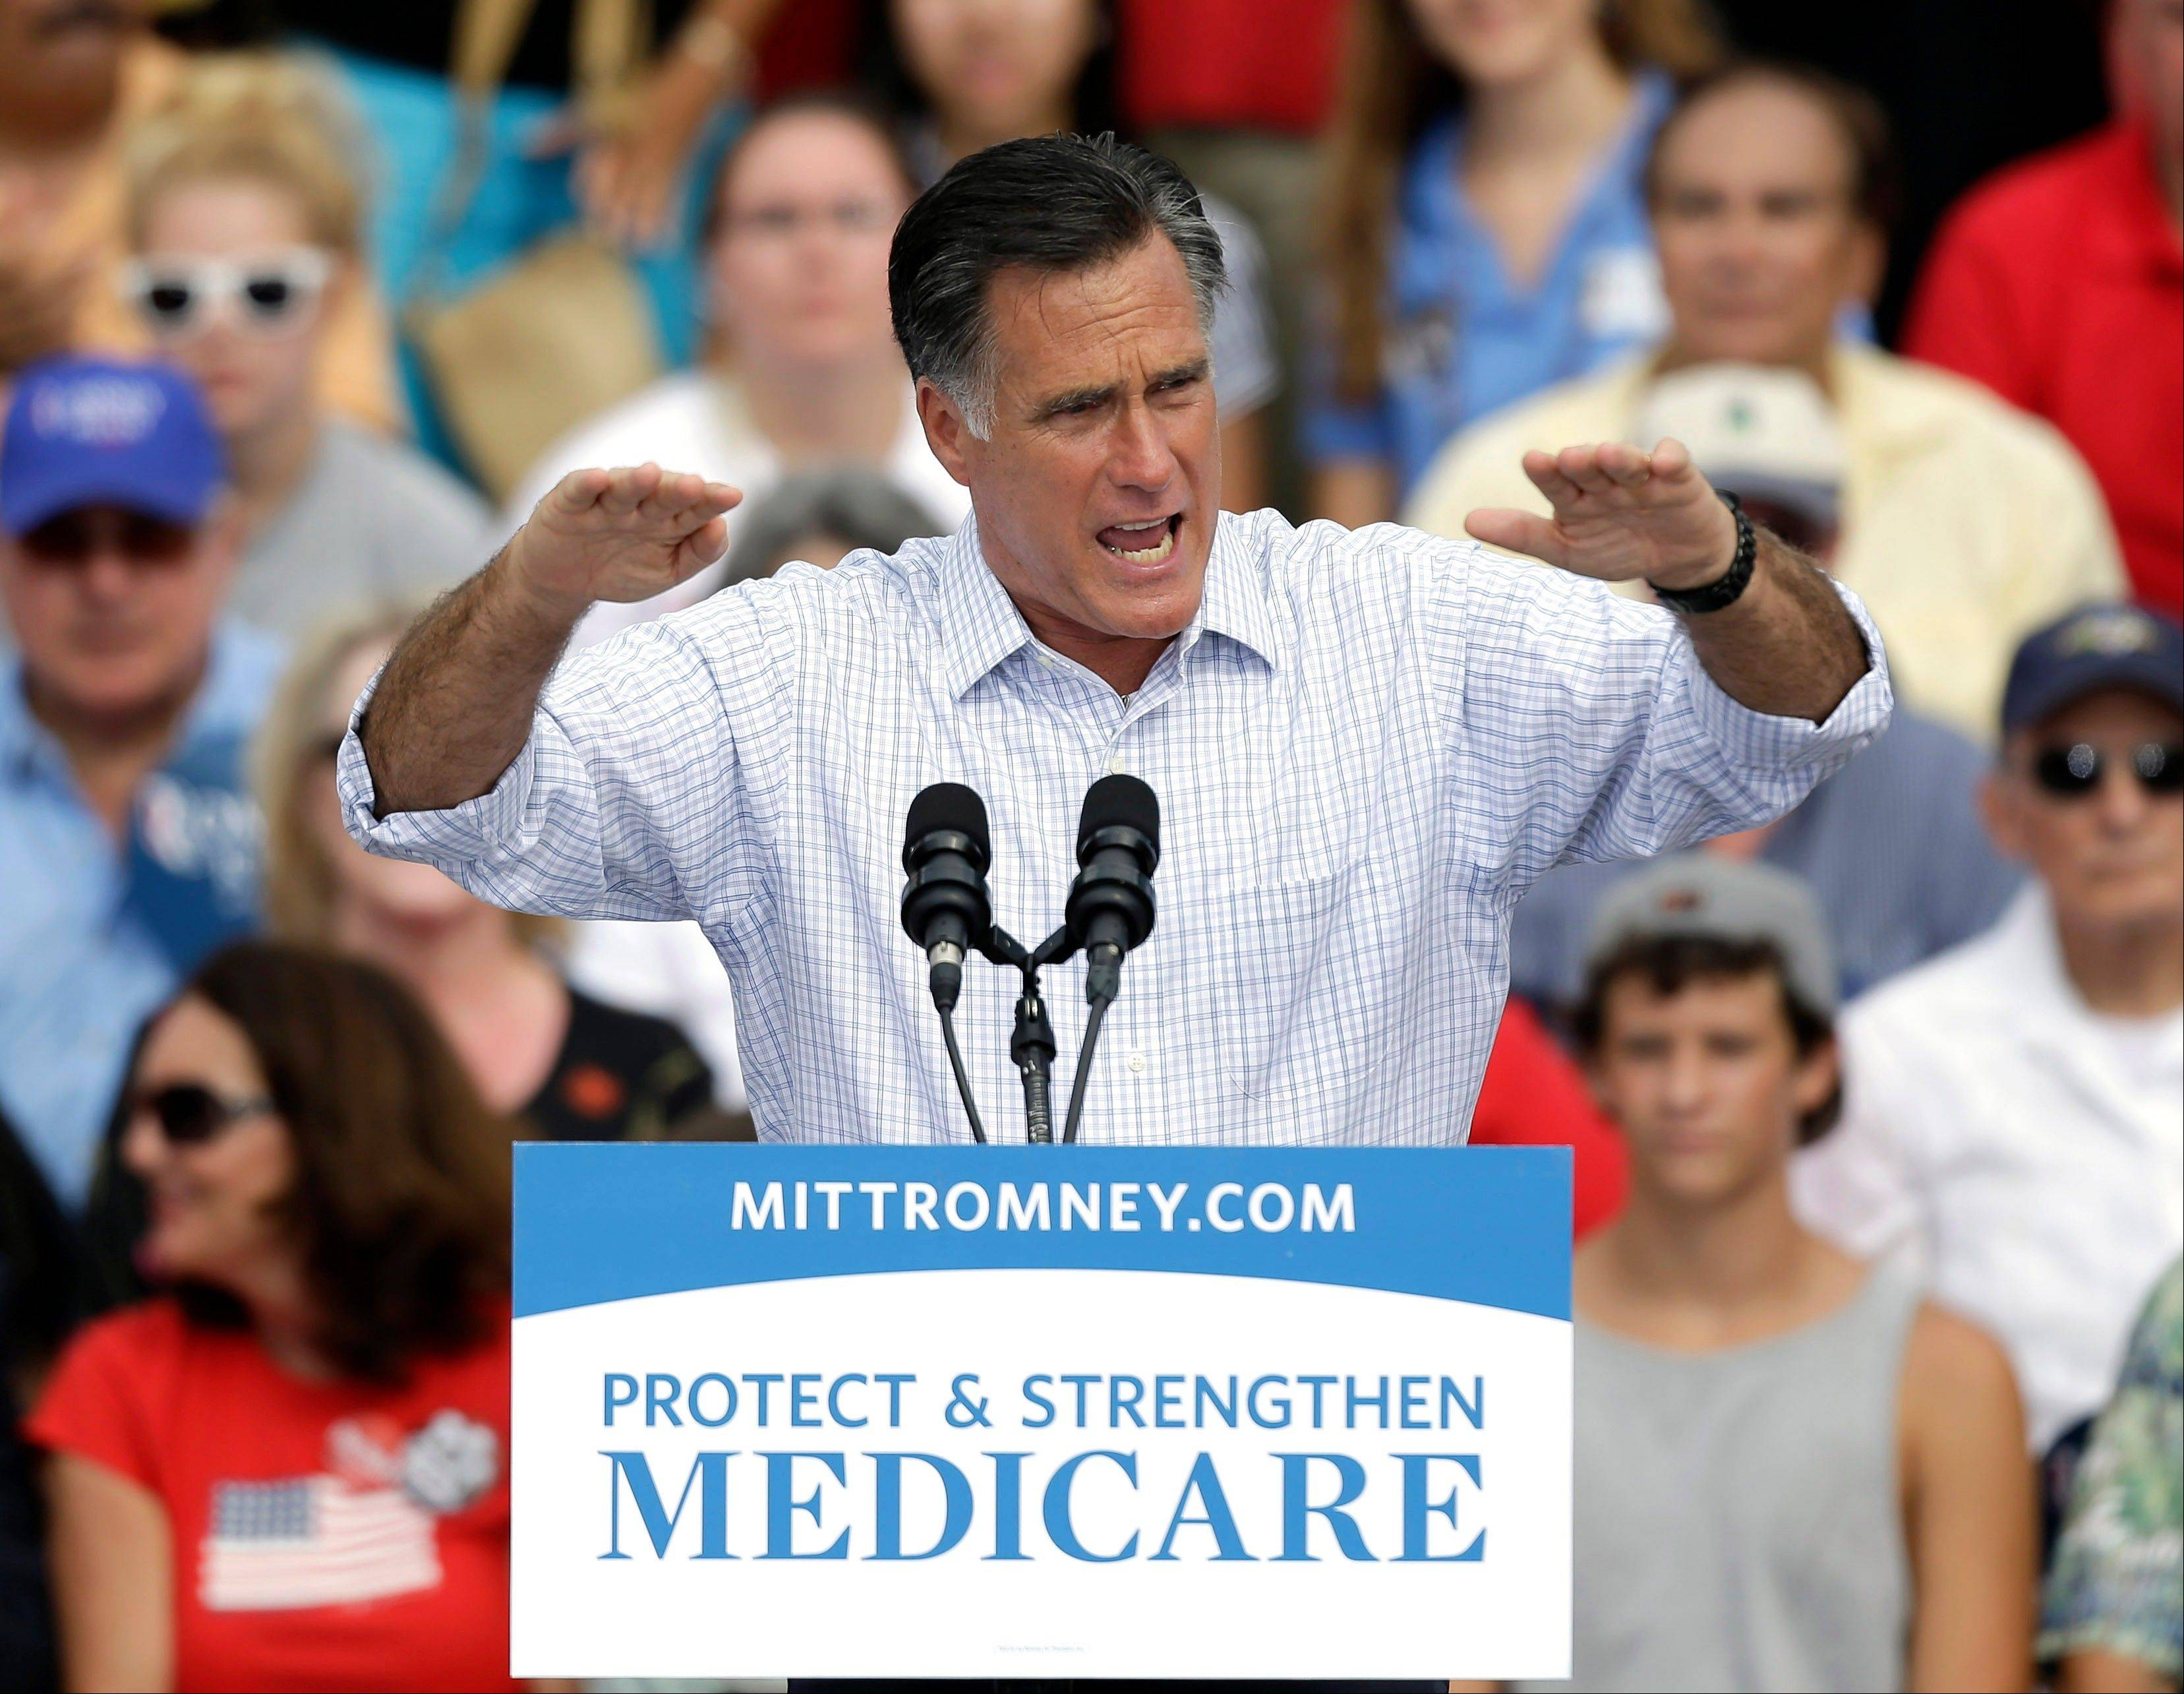 Republican presidential candidate and former Massachusetts governor Mitt Romney gestures during a campaign rally at the Ringling Museum of Art Thursday, Sept. 20, 2012, in Sarasota, Fla. (